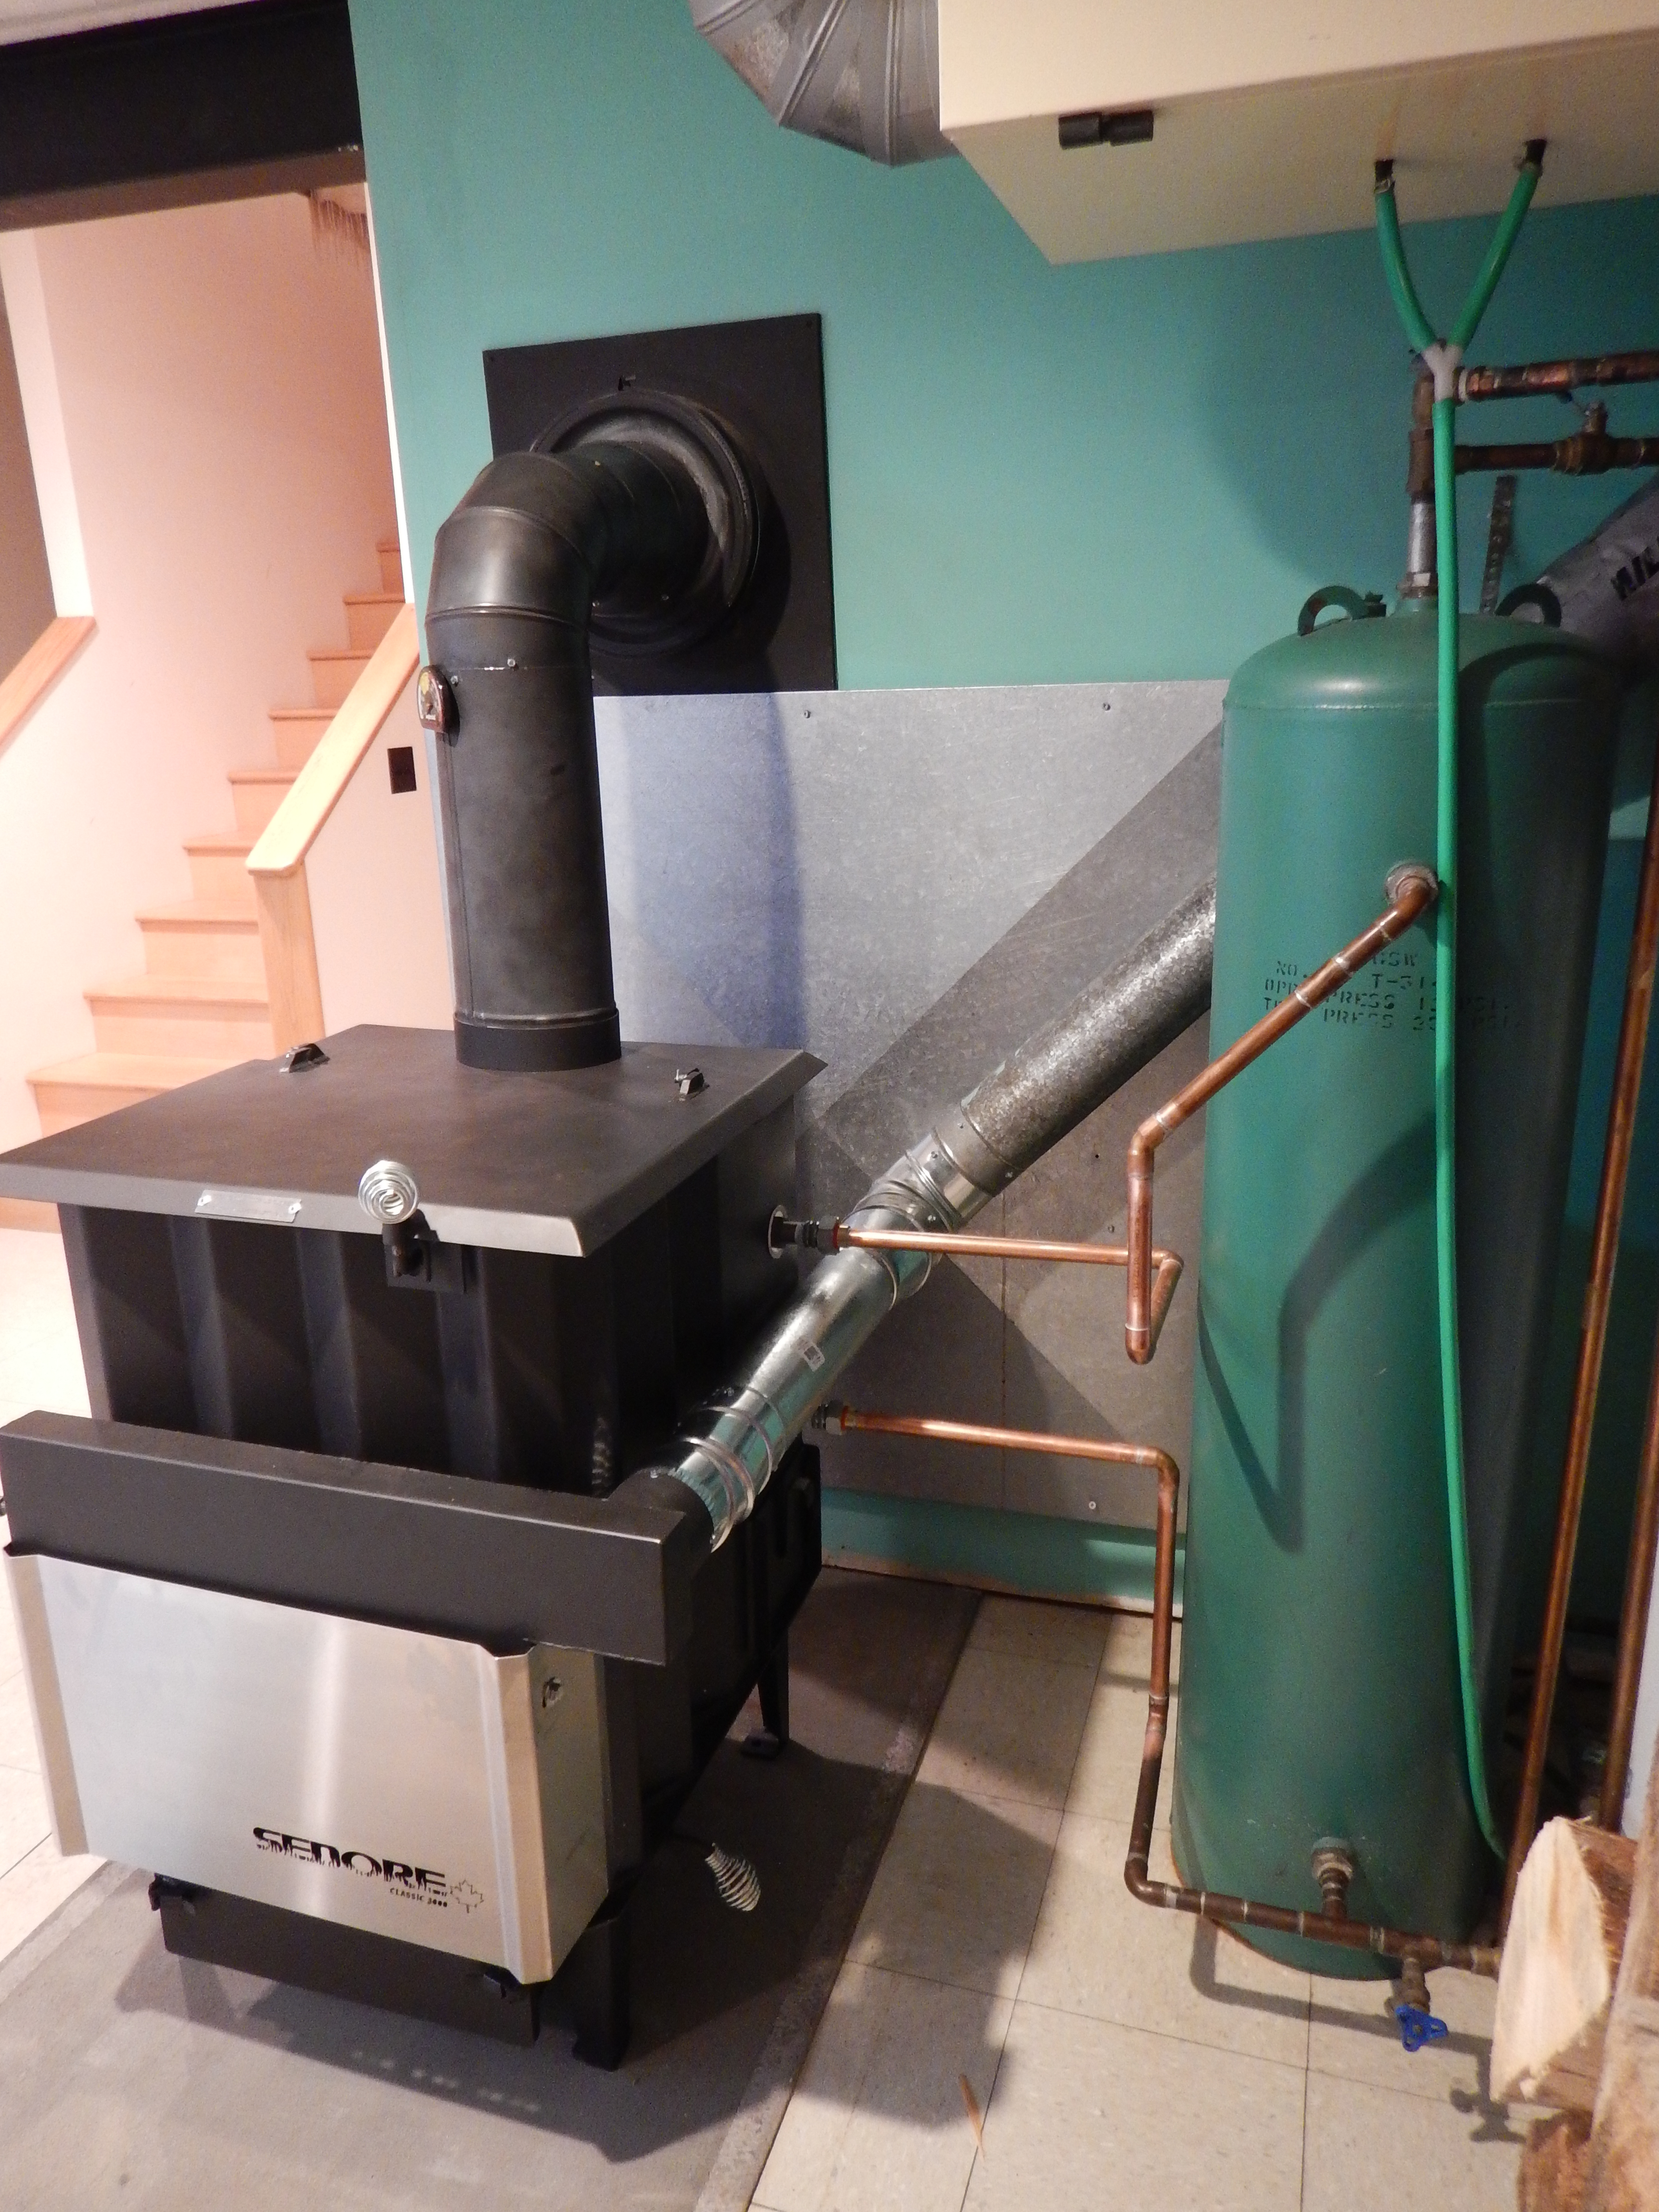 Sedore Classic 3000 installation with air manifold and radiant coil